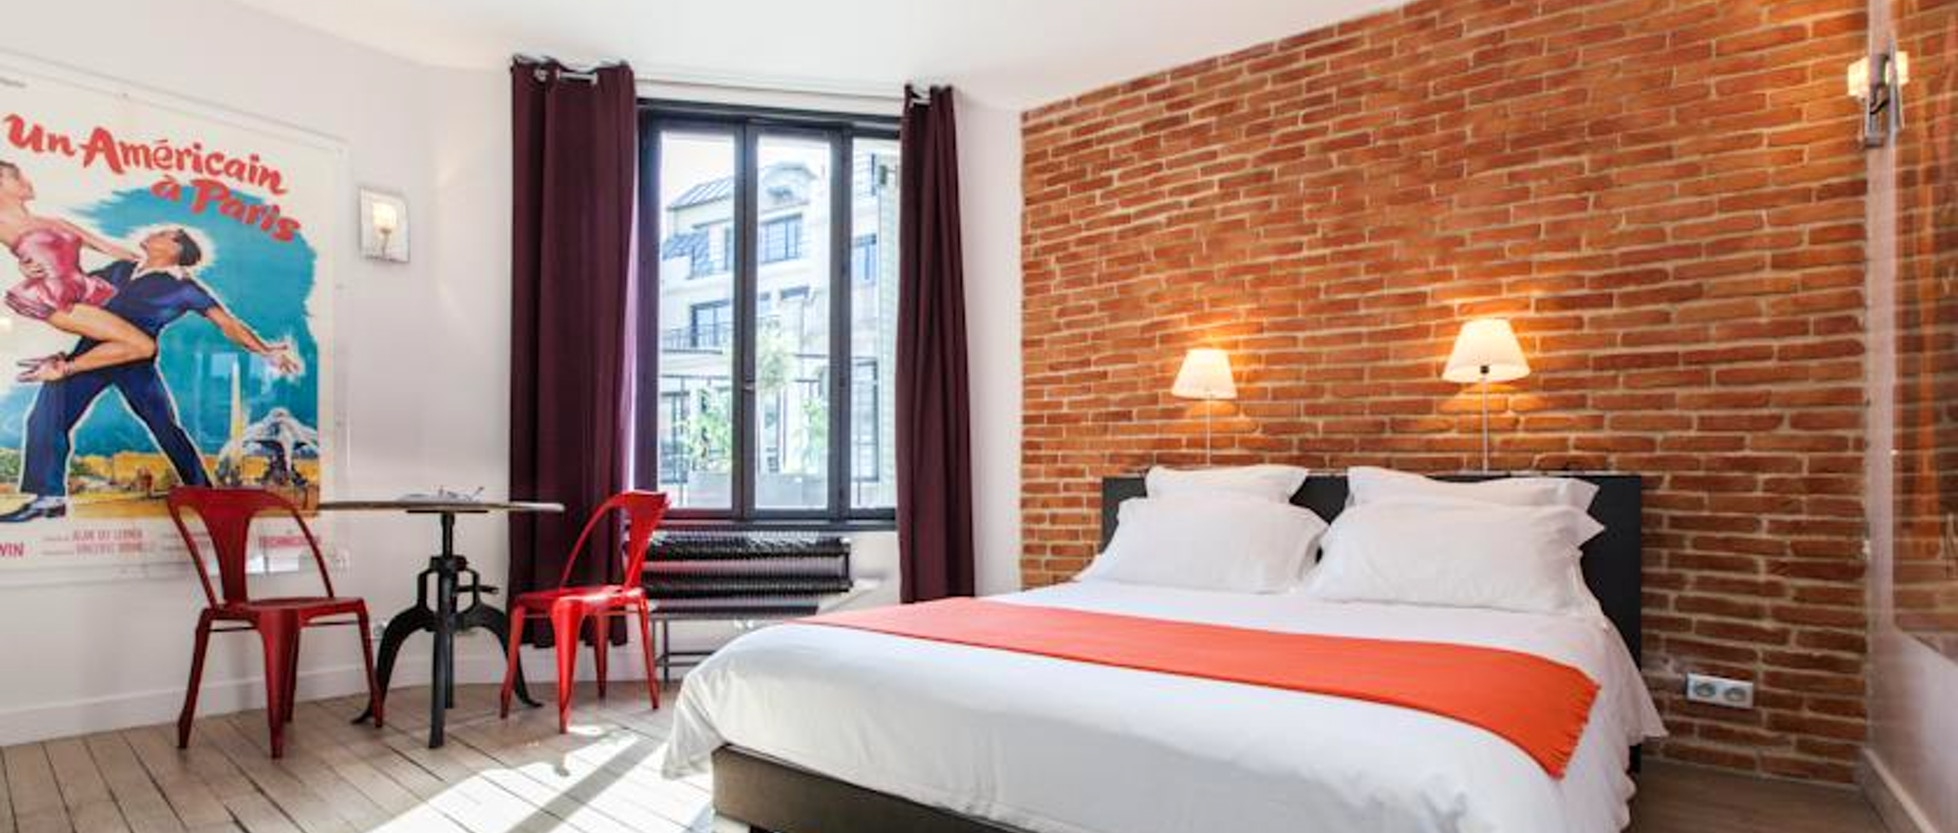 10 Bed and Breakfast di Parigi in centro | VIVI Parigi